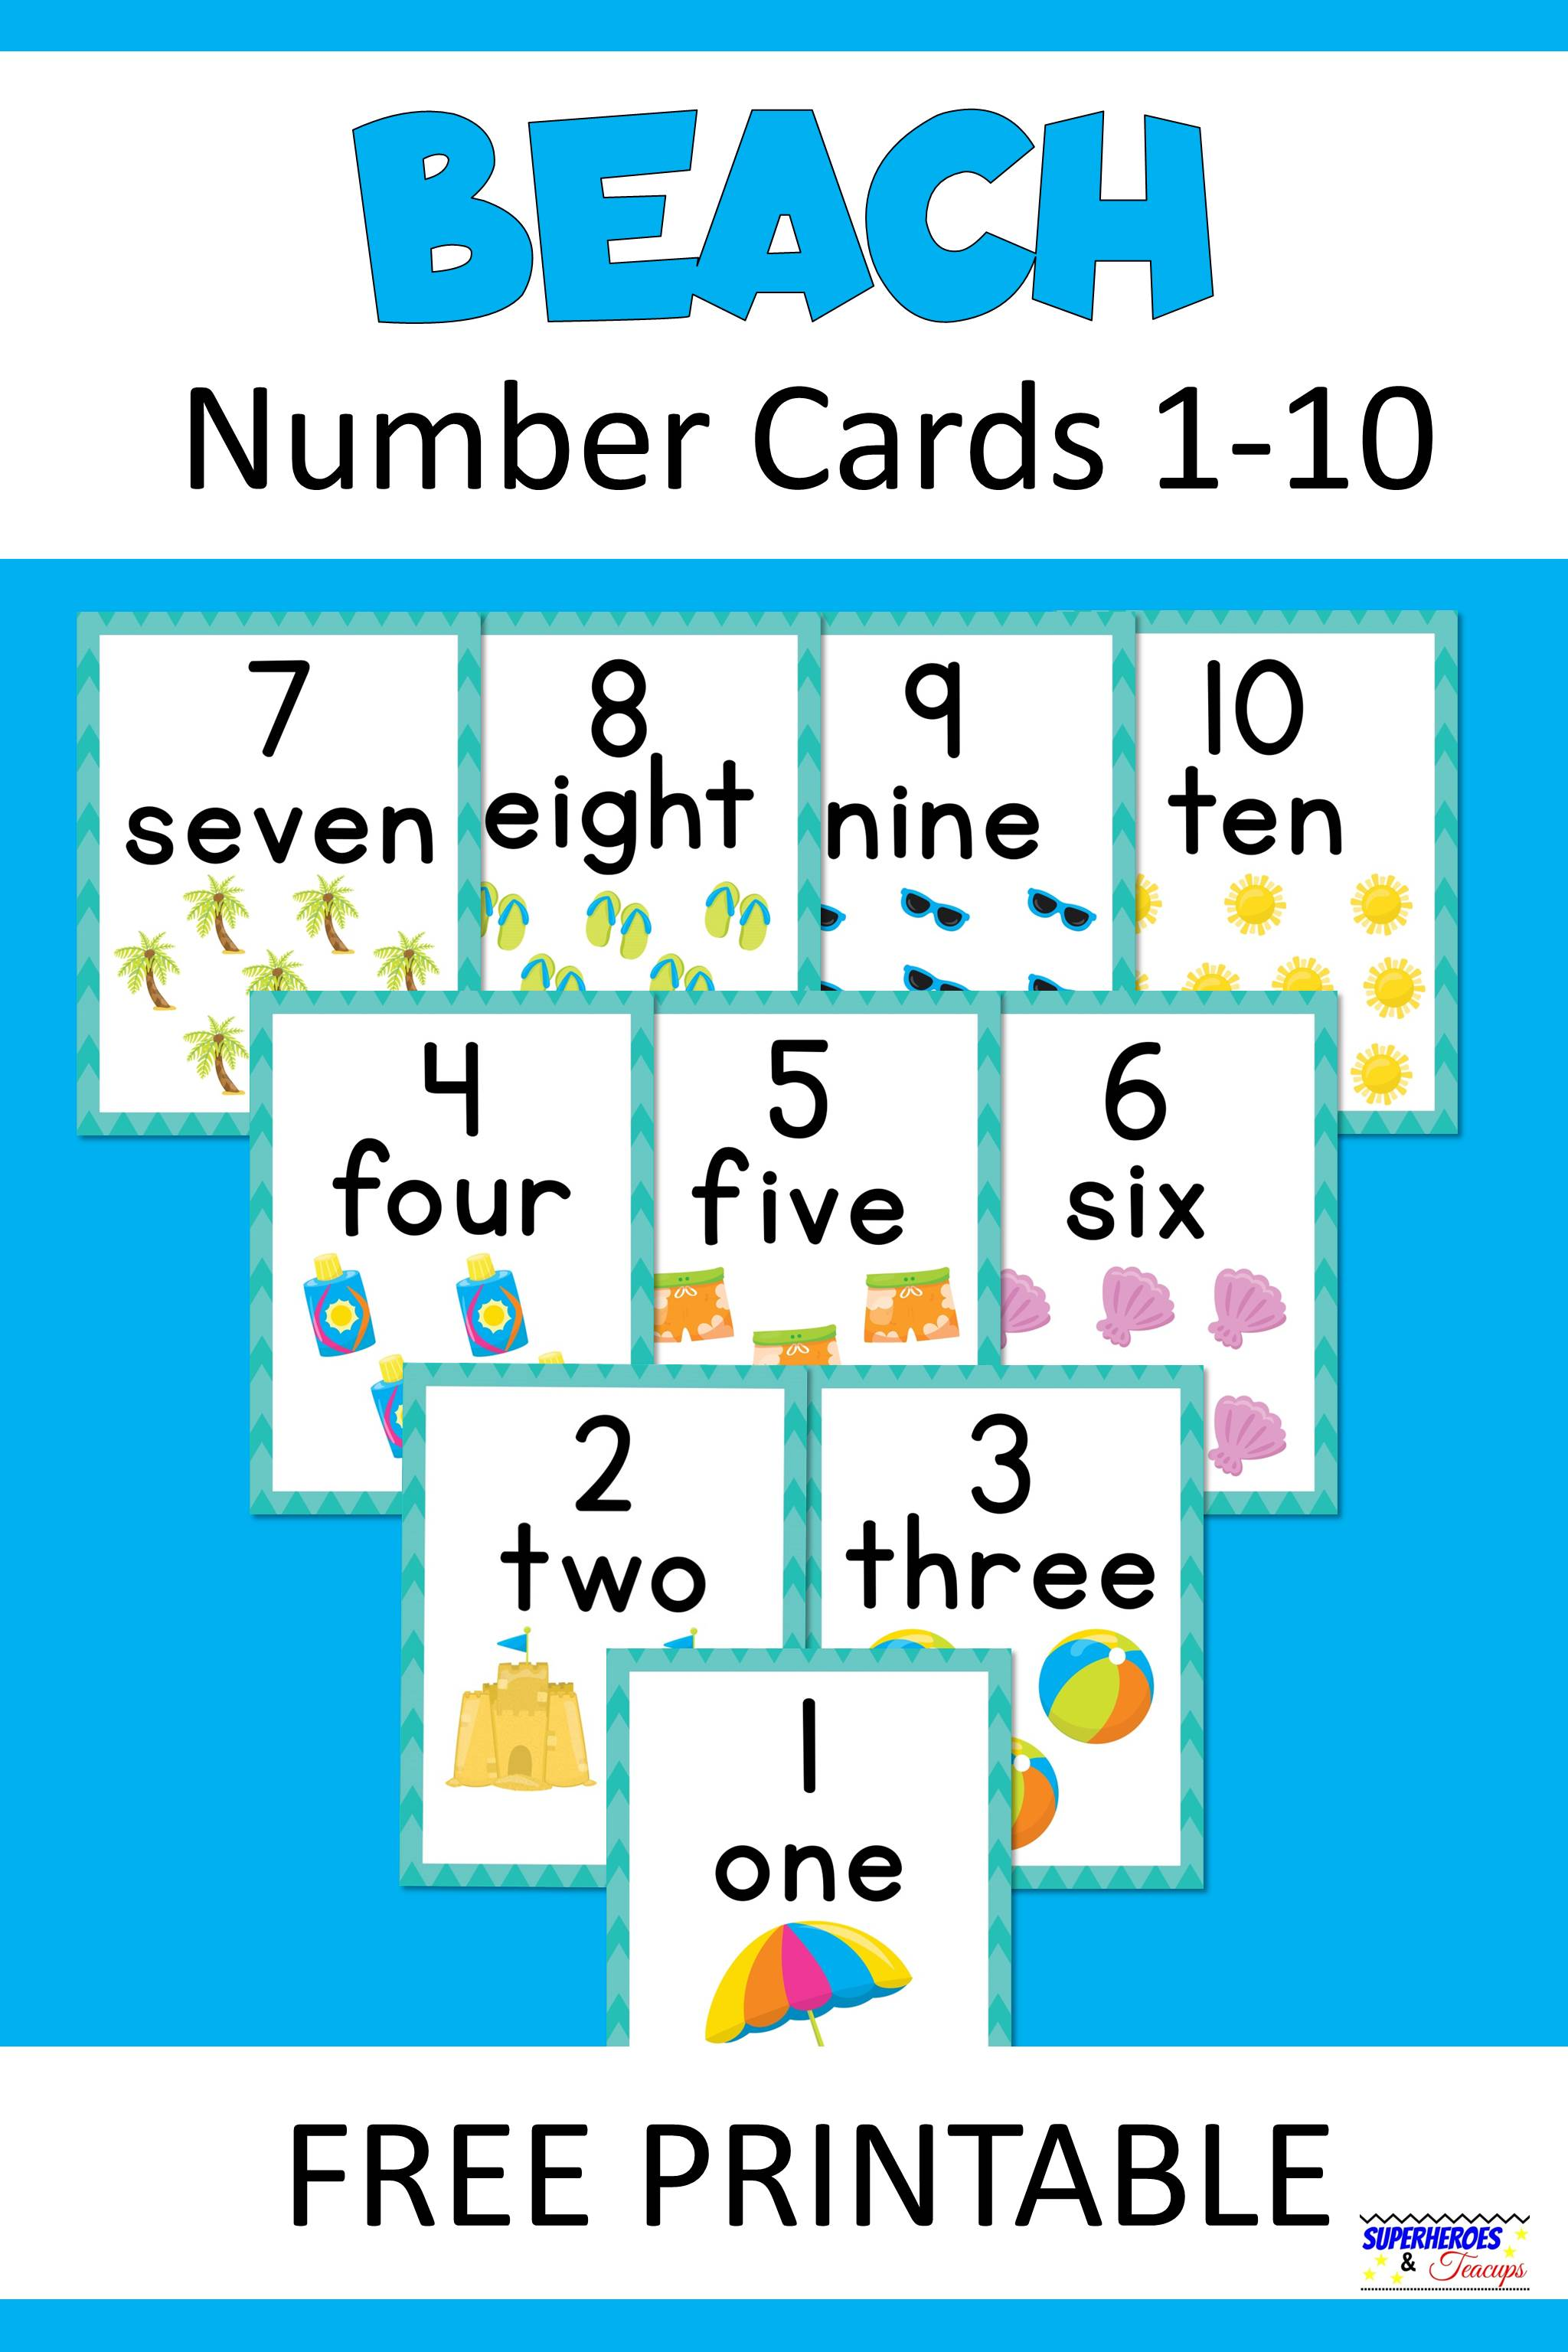 photograph relating to Printable Number Cards 1-10 titled Seaside Range Playing cards Absolutely free Printable Superheroes and Teacups